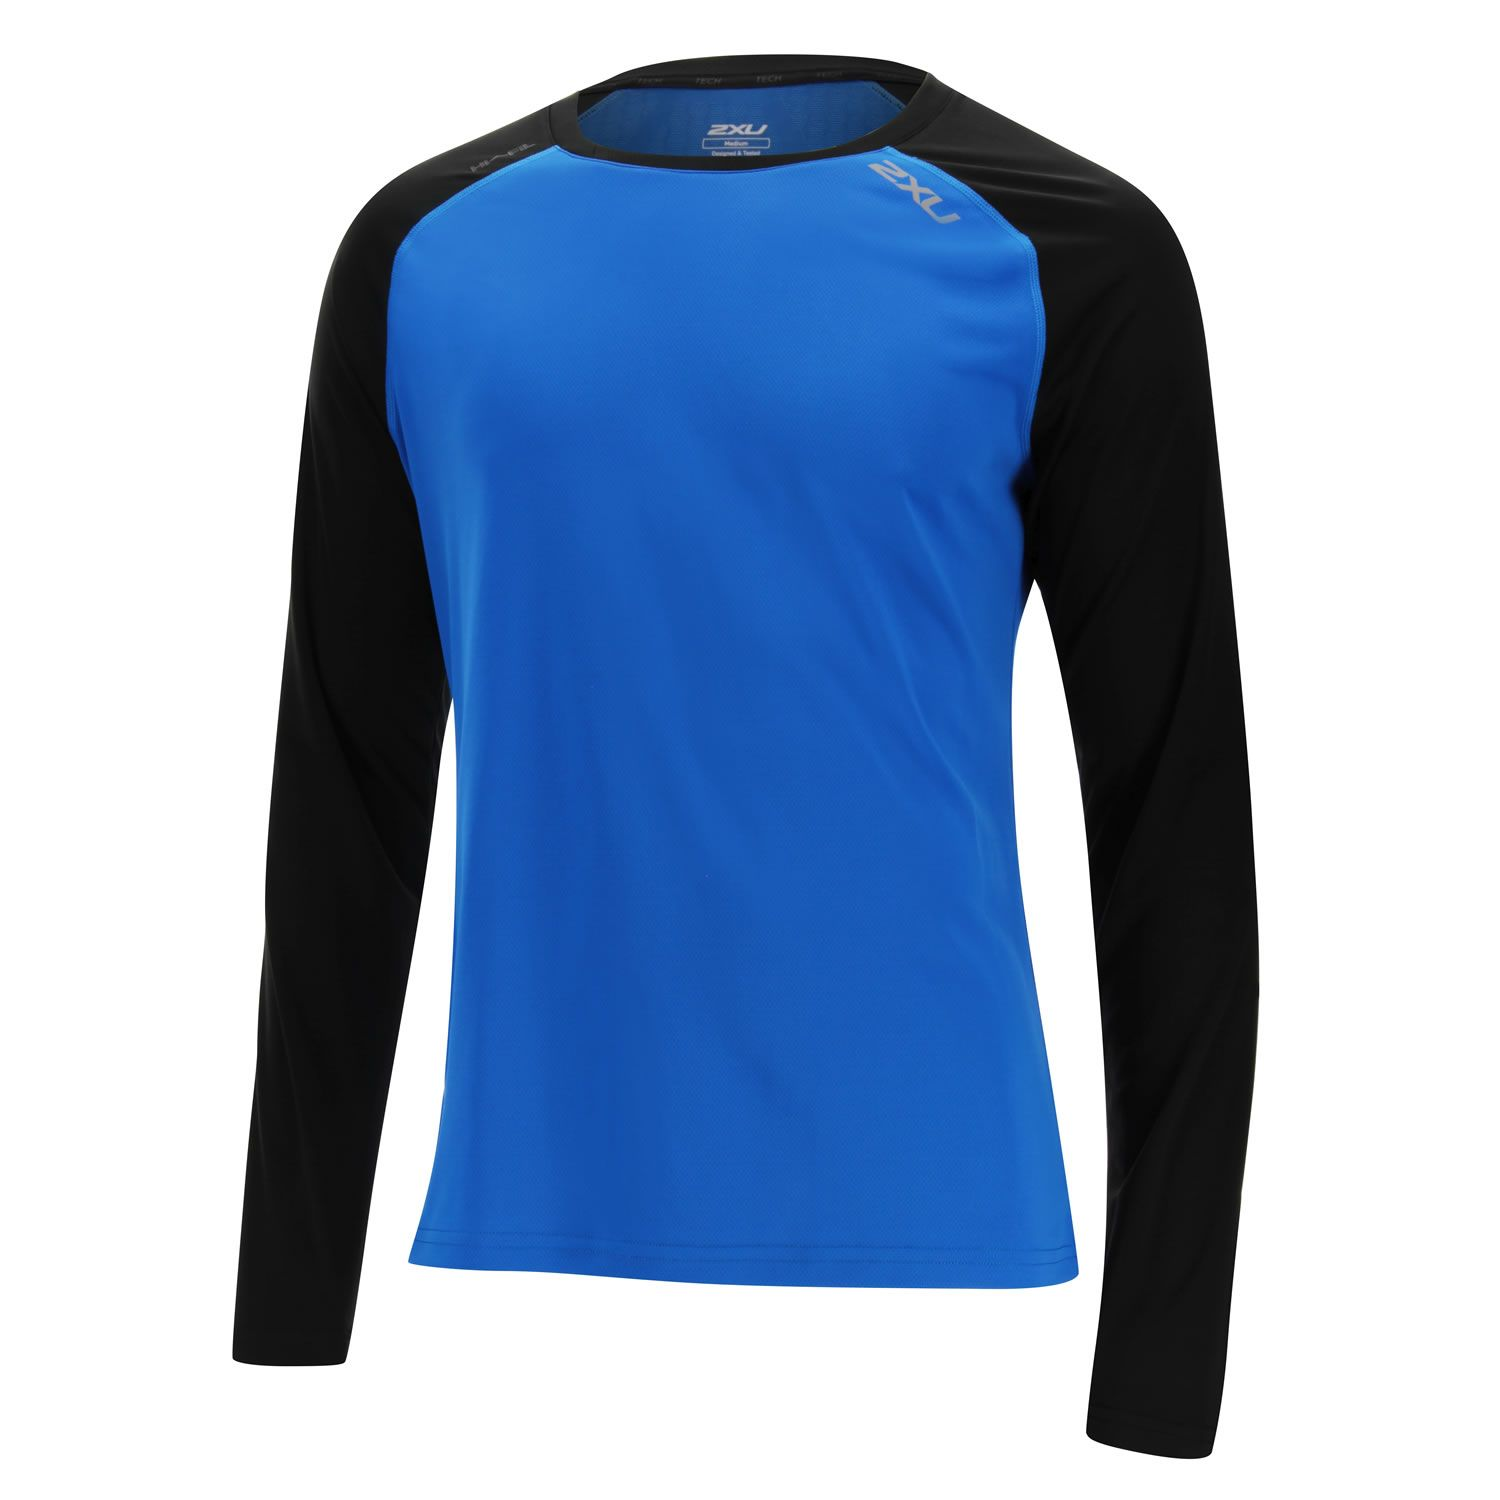 MAGLIA RUNNING 2XU MEN'S TECH VENT LS TOP MR4080A CBB BLK.jpg